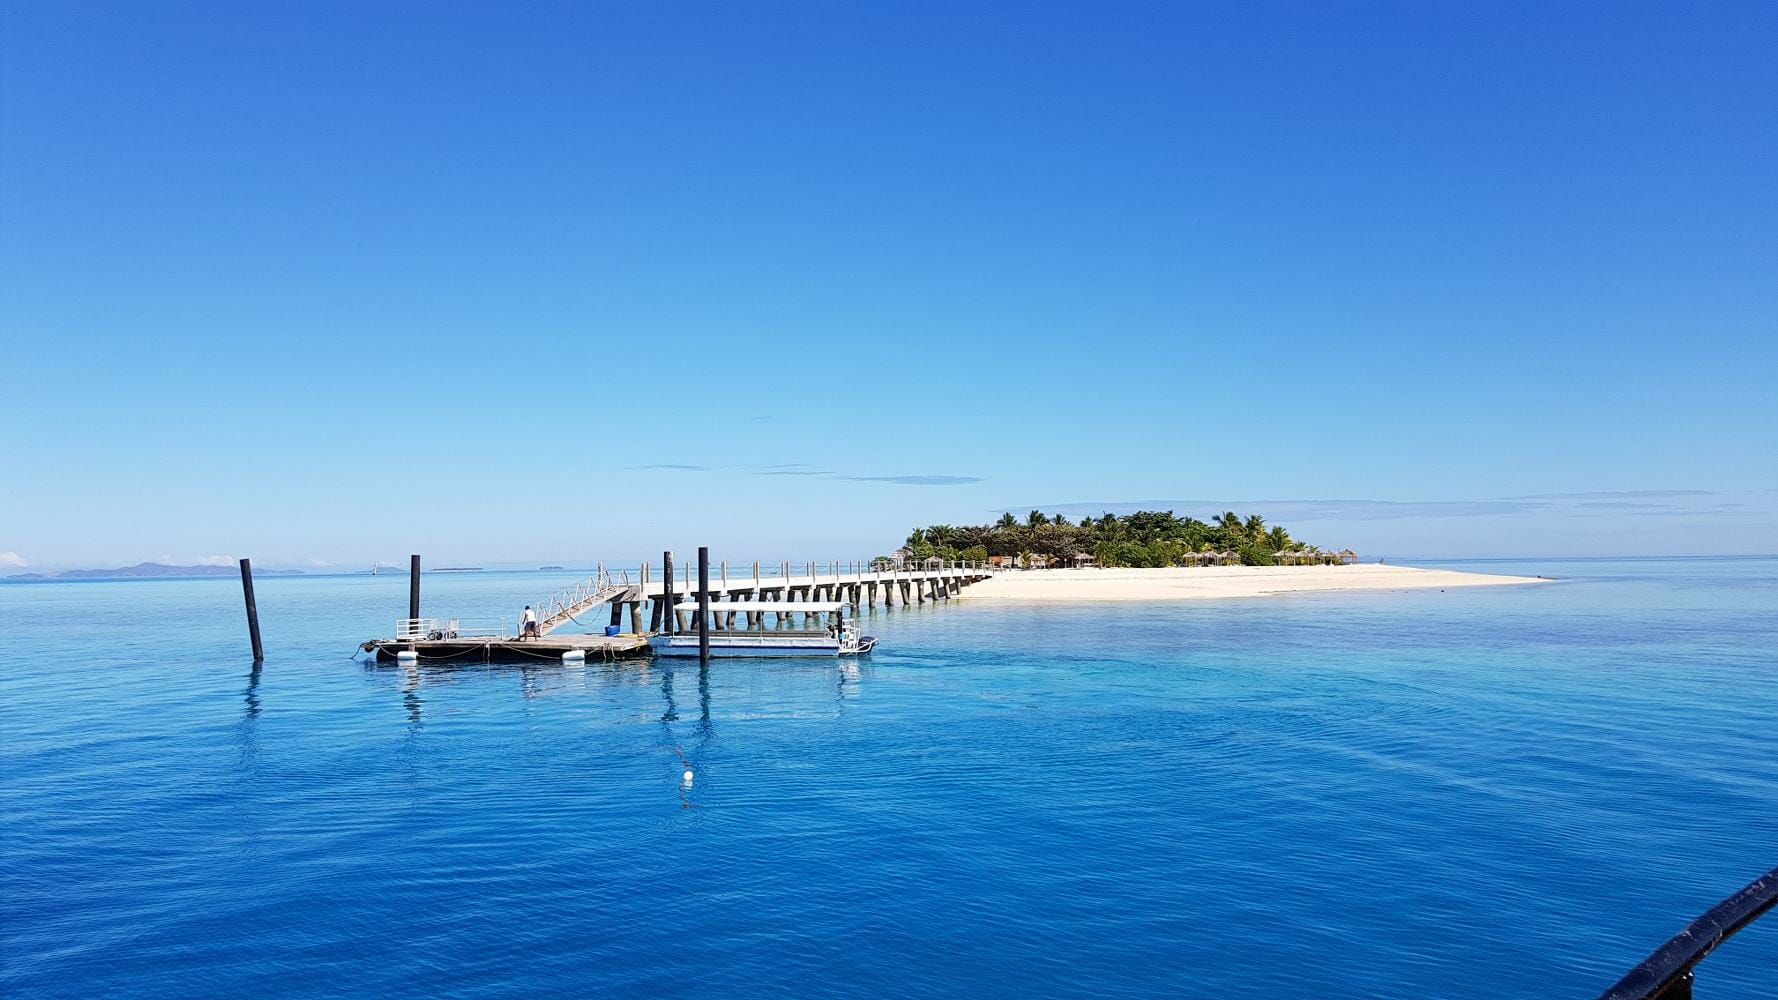 The new jetty at Tivua Island in Fiji